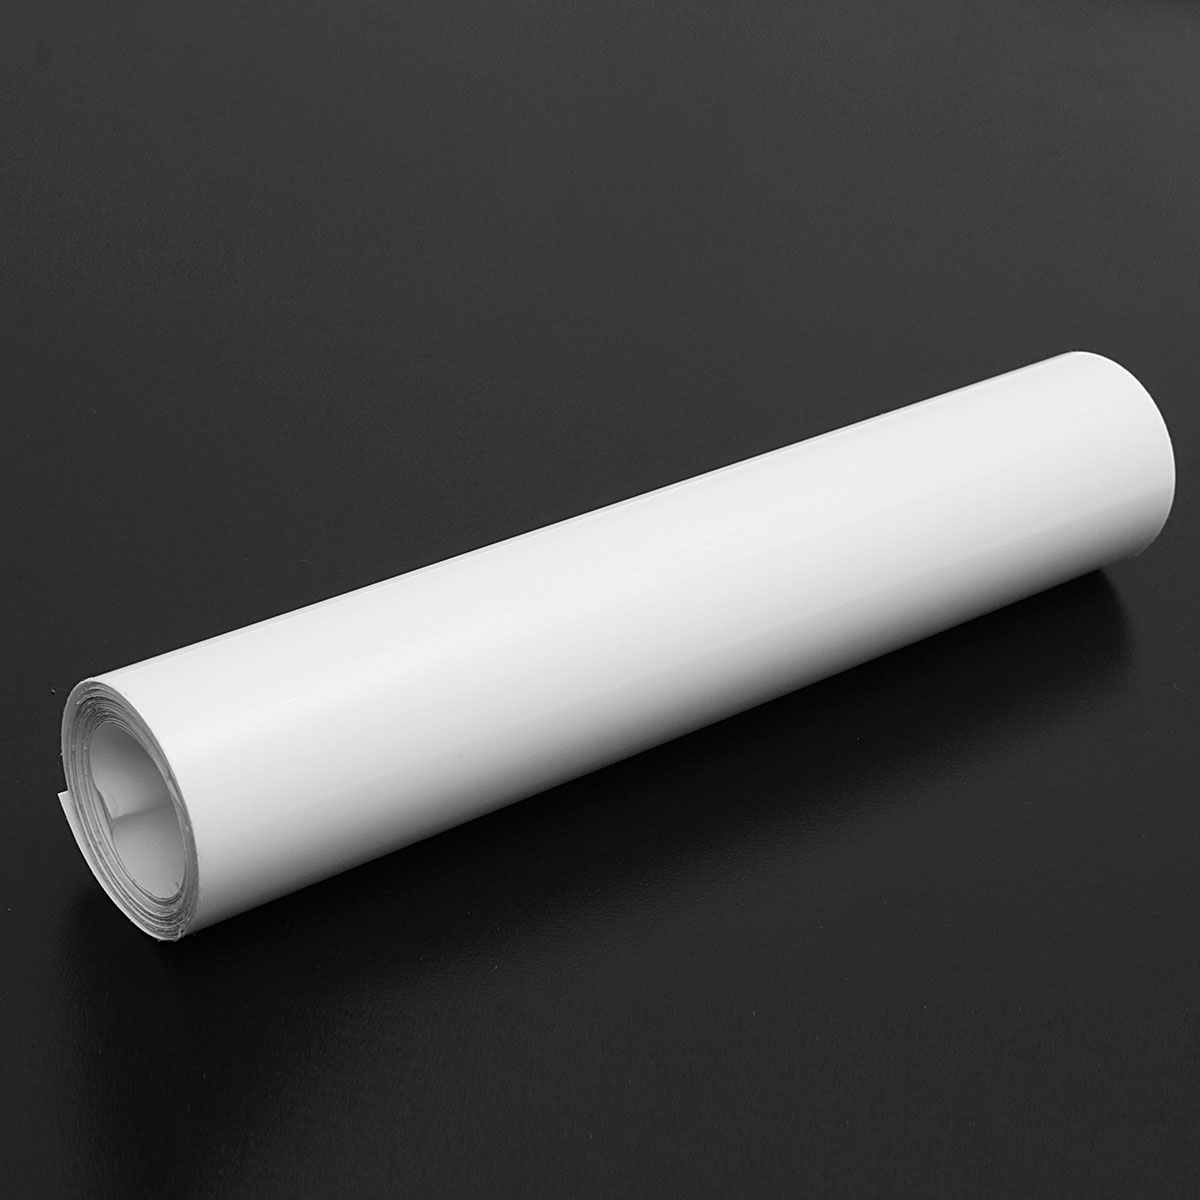 20 200cm clear car door sill edge paint protection vinyl film sheet anti scratch ebay. Black Bedroom Furniture Sets. Home Design Ideas